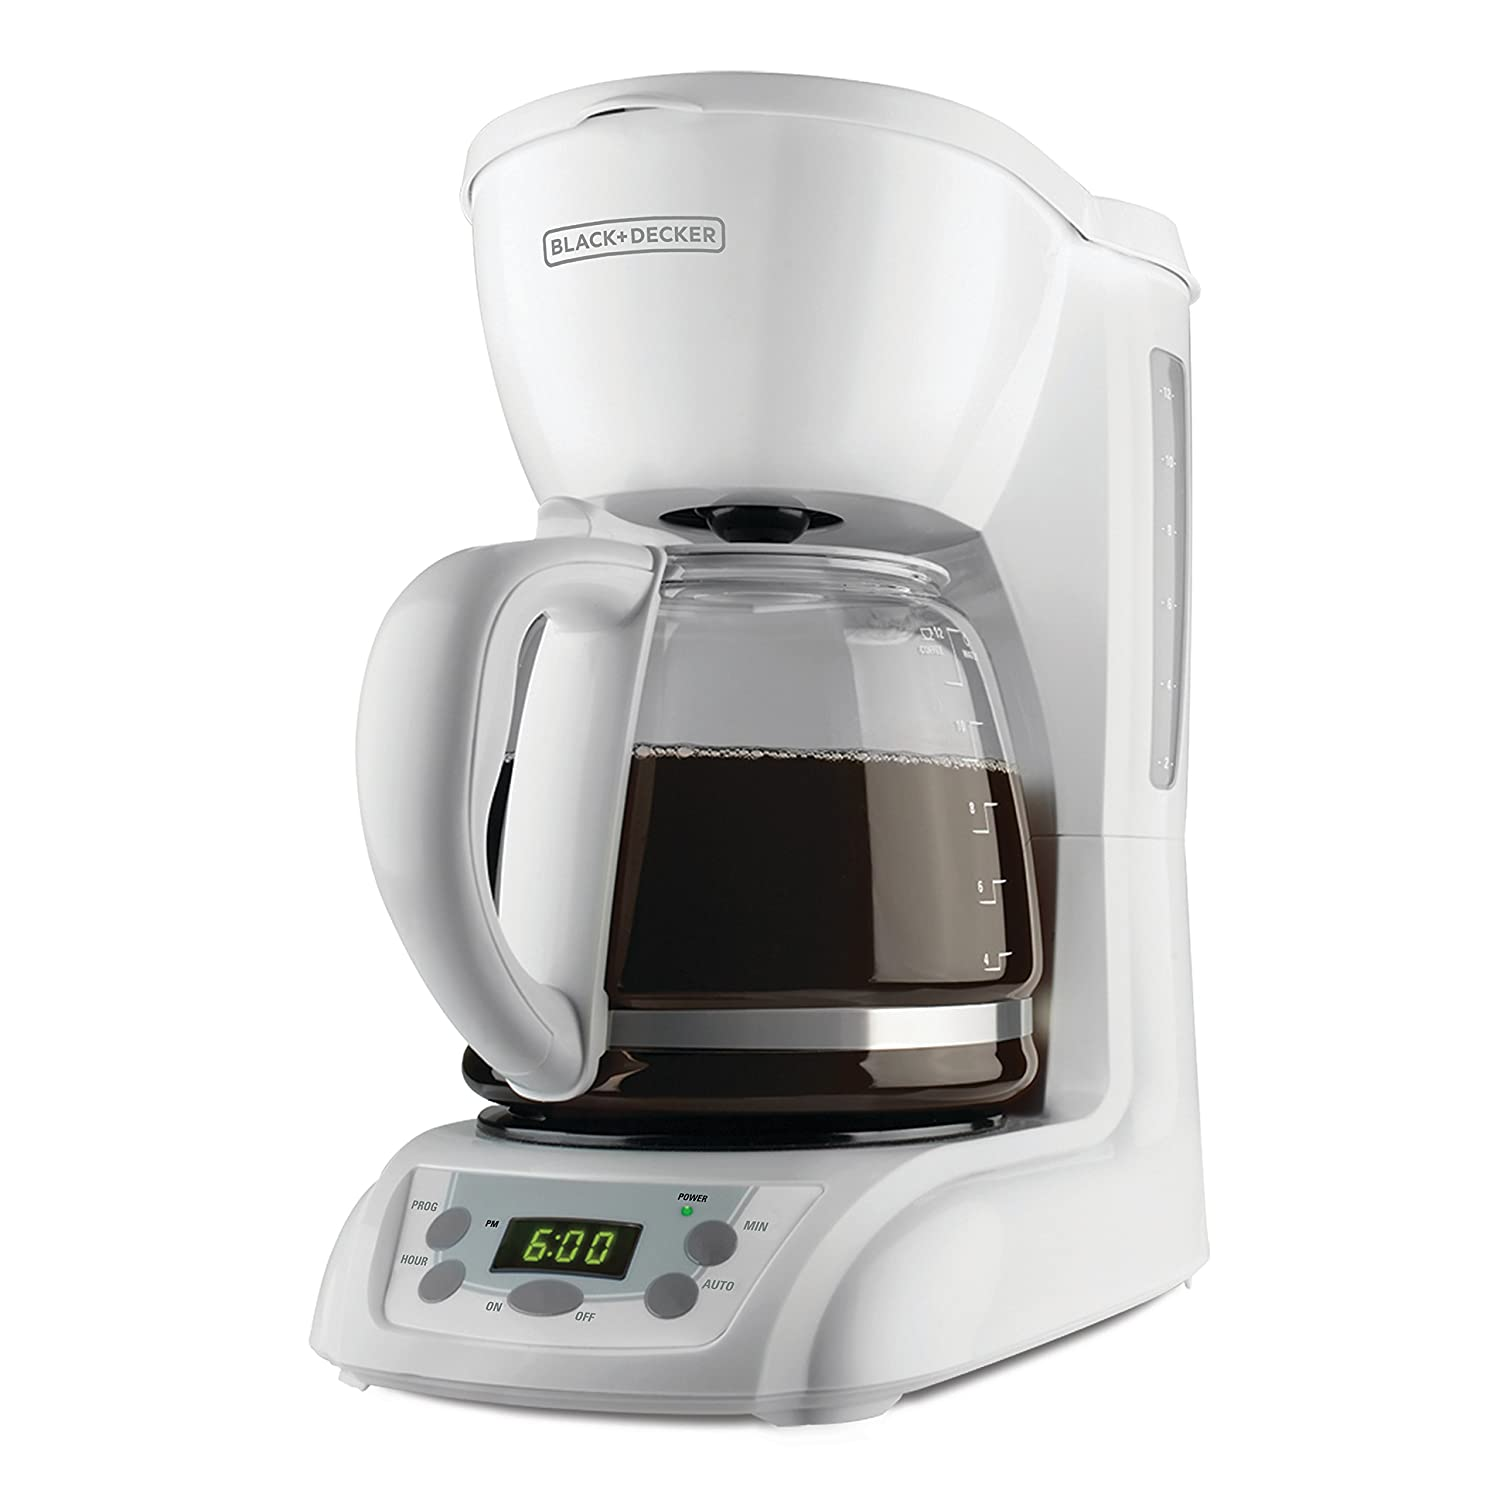 Black and decker coffee maker 12 cup programmable - Amazon Com Black Decker 12 Cup Programmable Coffeemaker With Glass Carafe White Dlx1050w Drip Coffeemakers Kitchen Dining